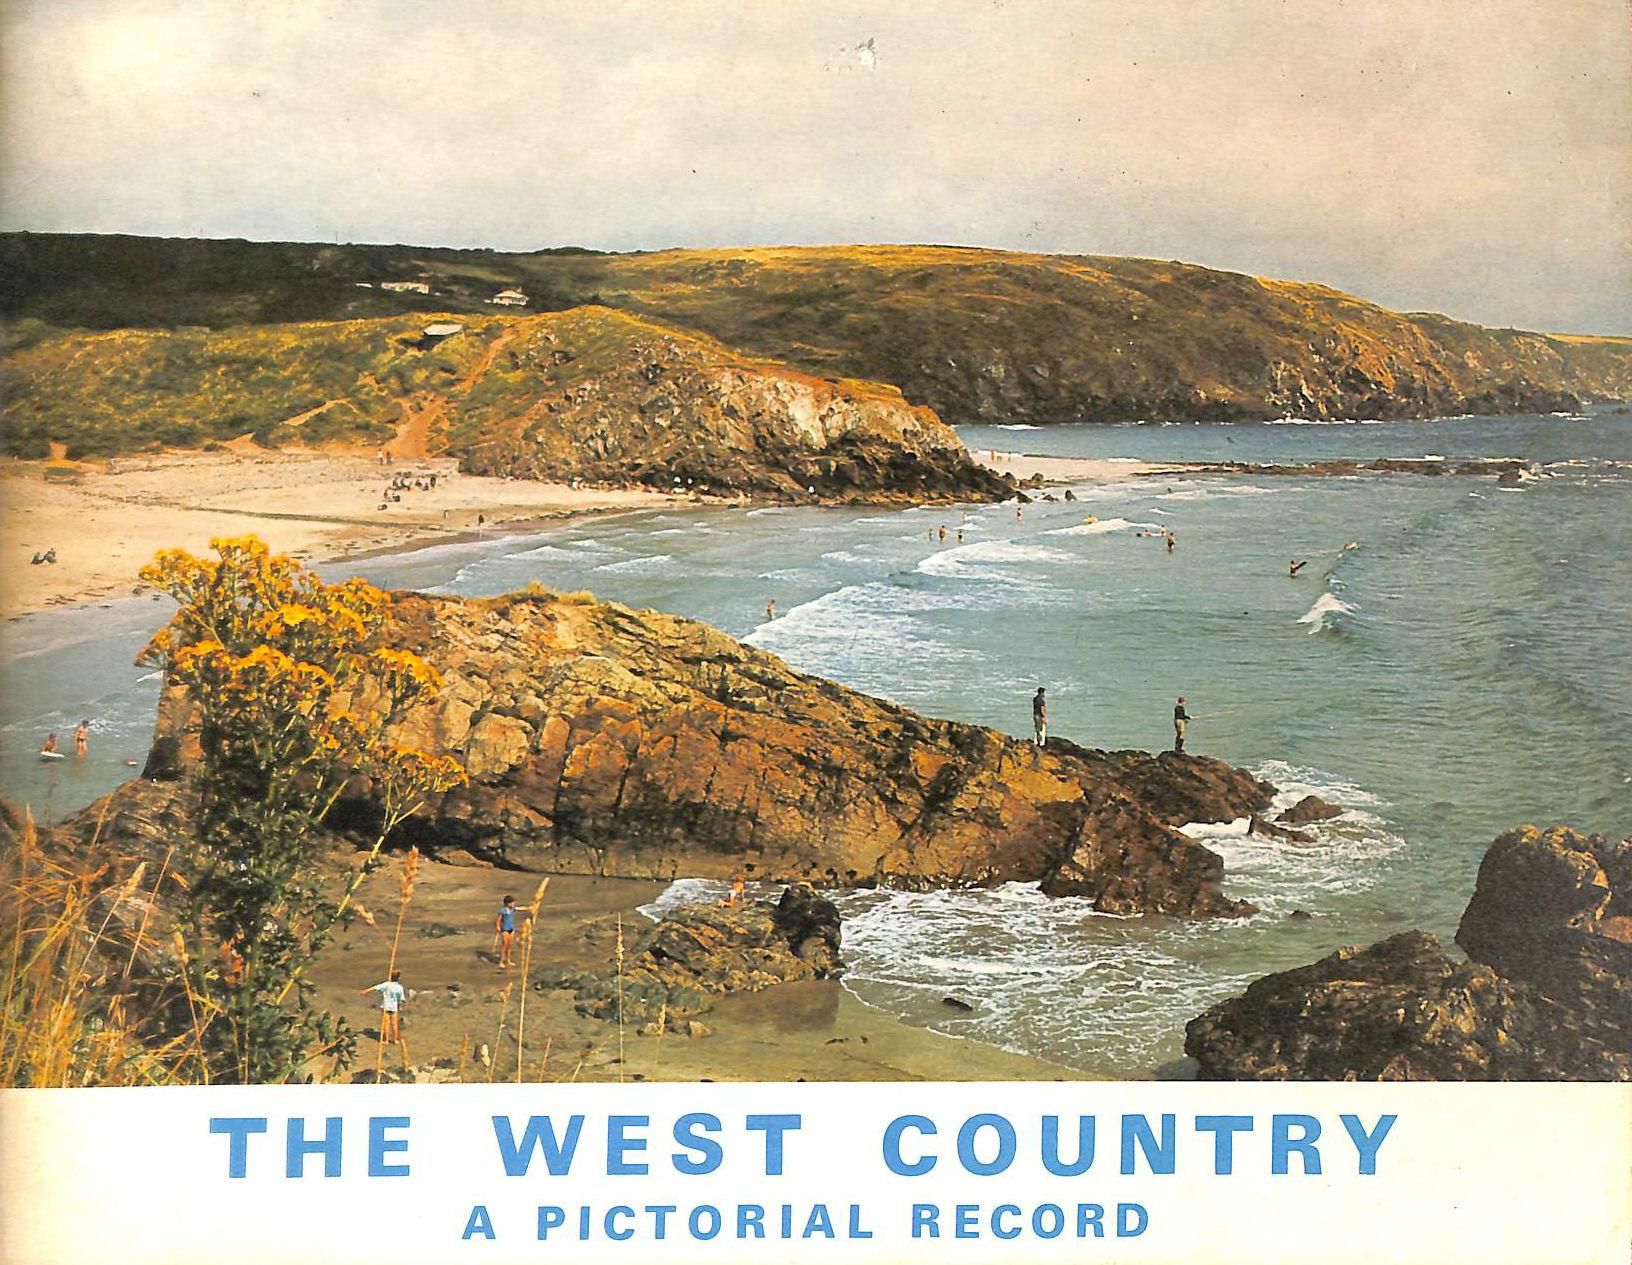 Image for THE WEST COUNTRY A PICTORIAL RECORD